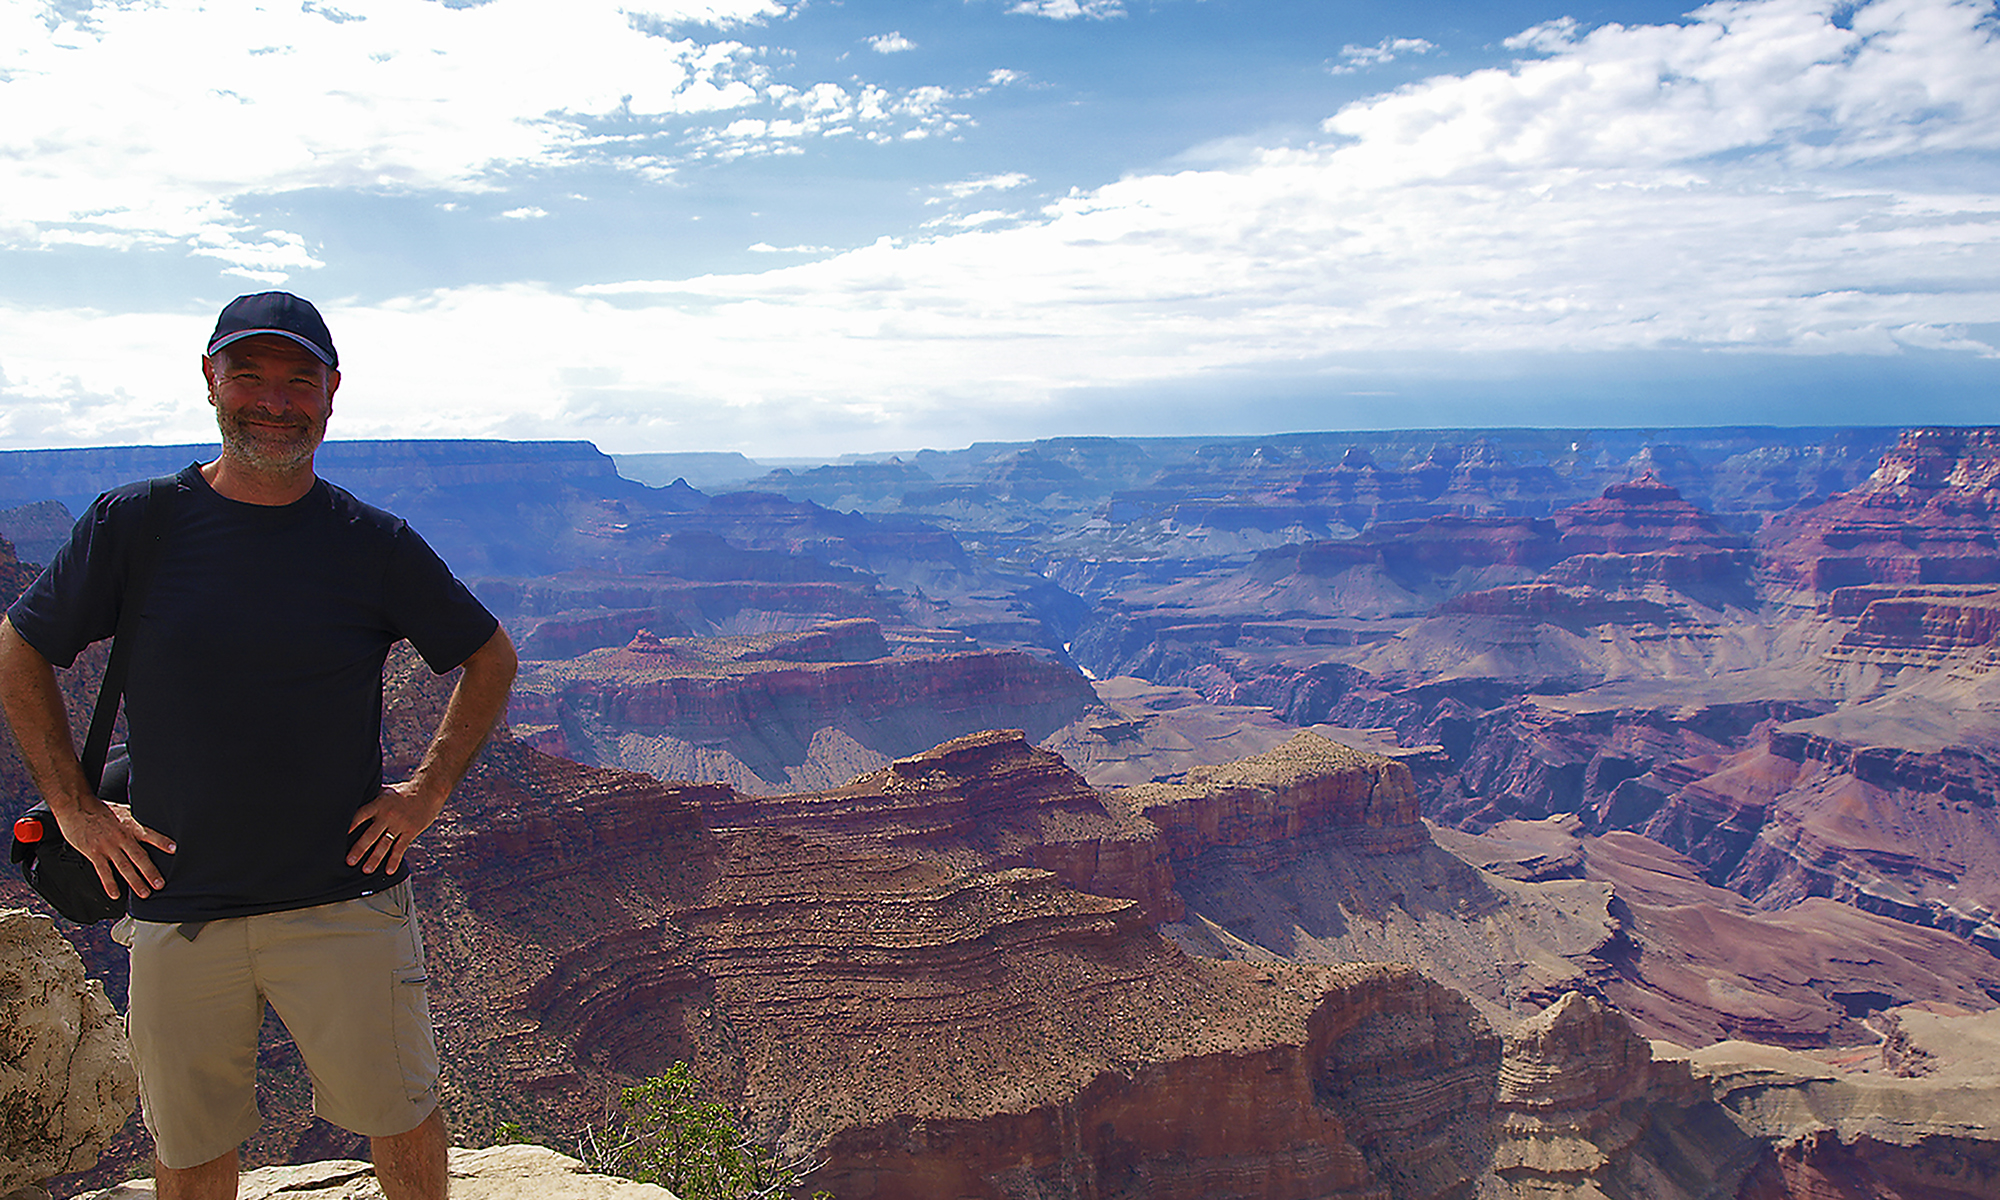 Joan i panoràmica del Grand Canyon des de Moran Point / Joan and view over the Grand Canyon from Moran Point